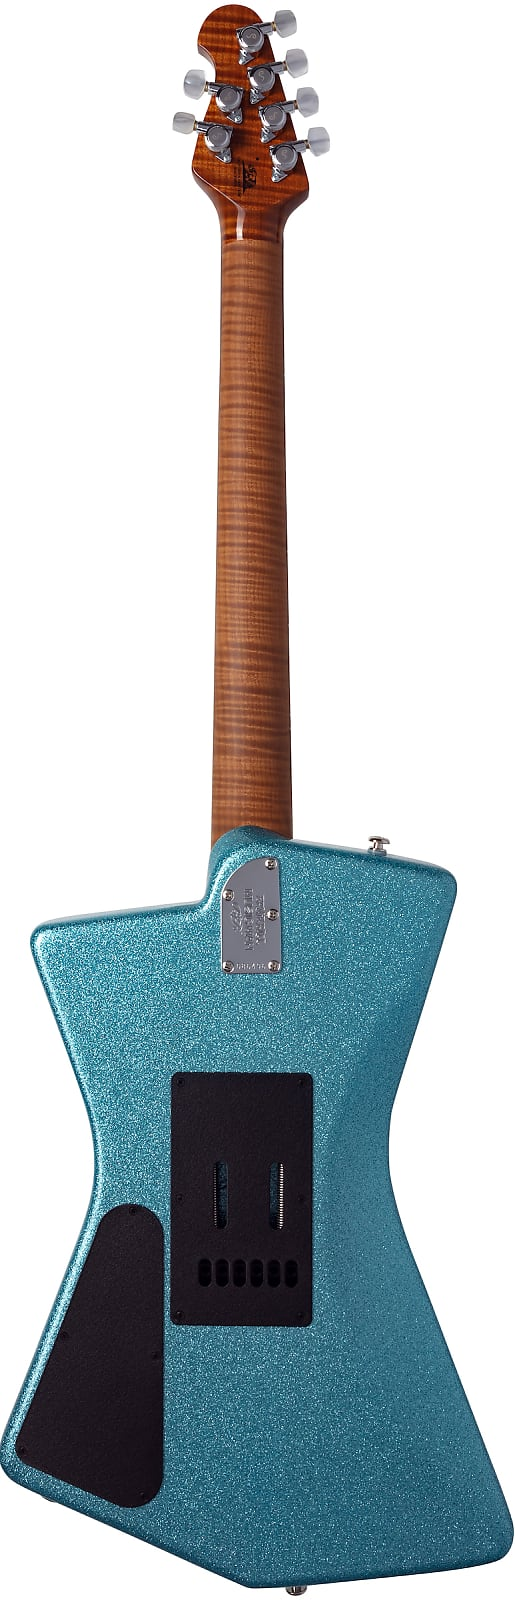 Ernie Ball Music Man St. Vincent Ball Family Reserve Turquoise Crush Sparkle #73 of 87